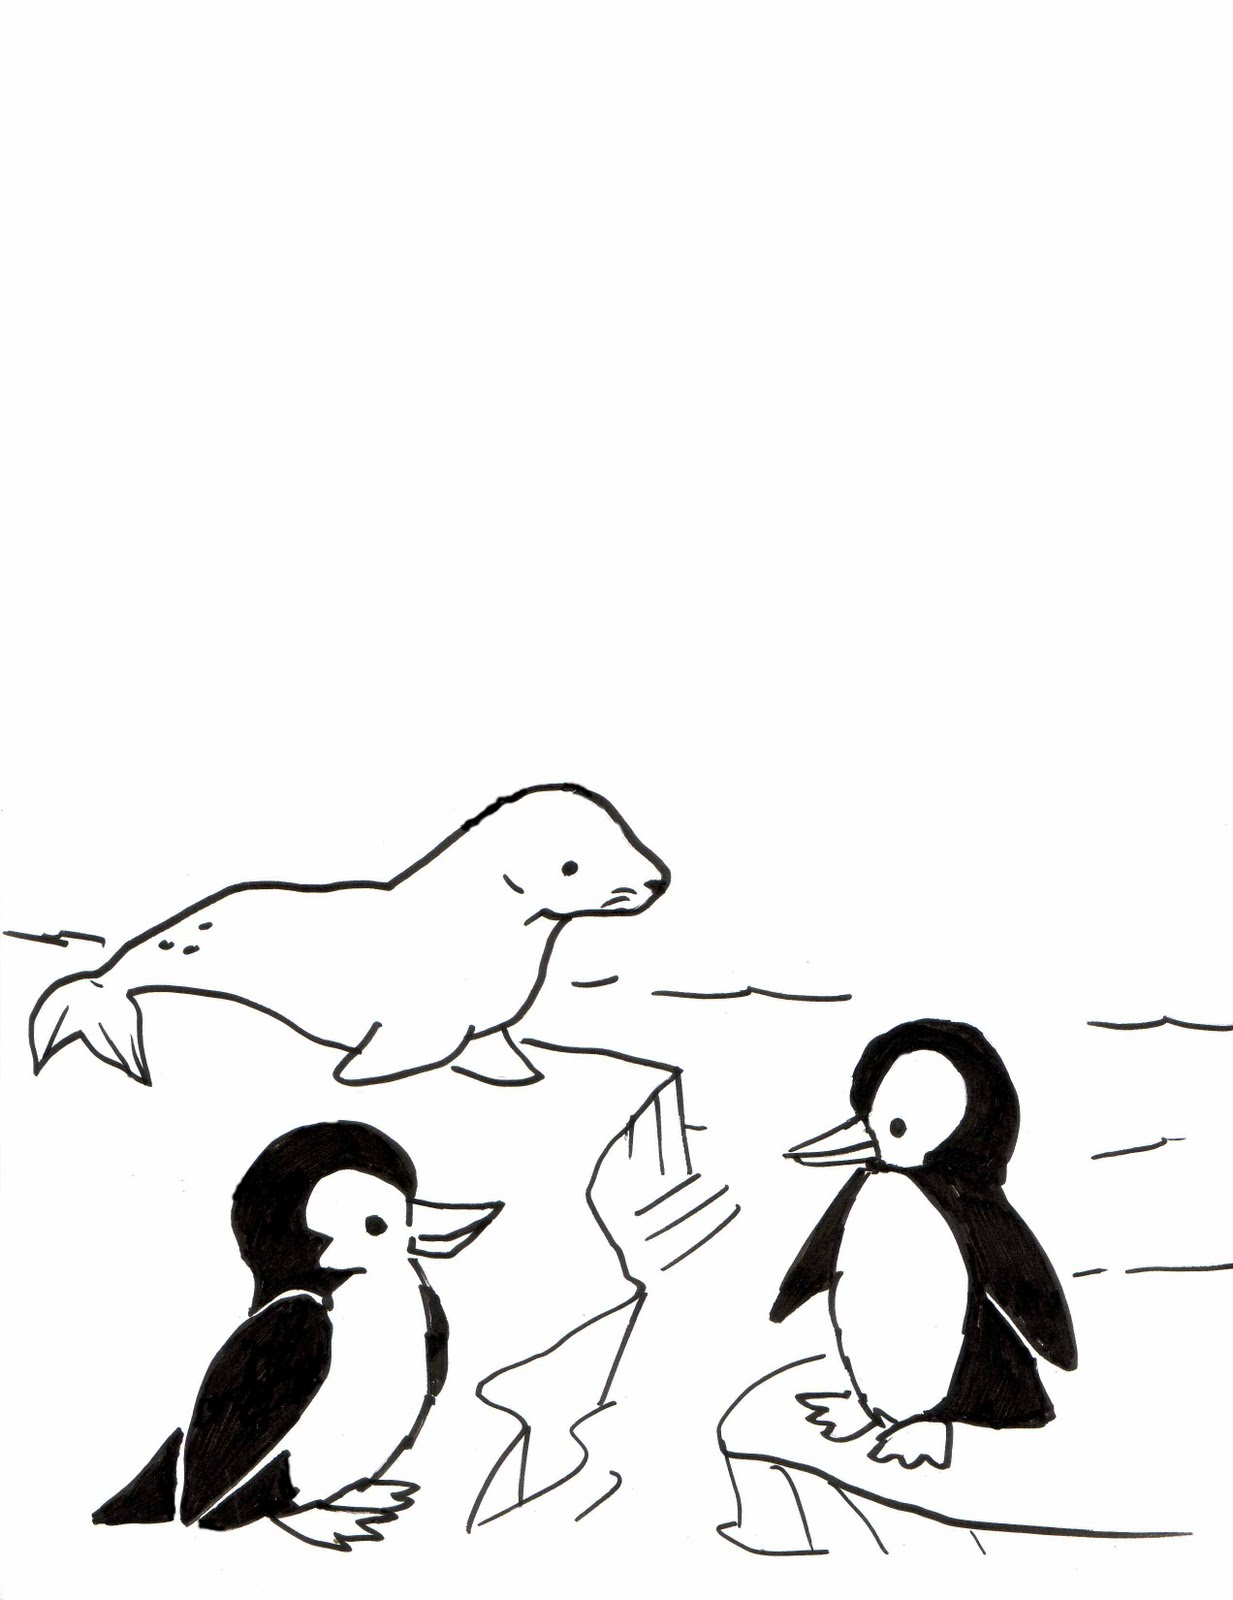 Kid Sketches: Penguin and Seal sketching activity for